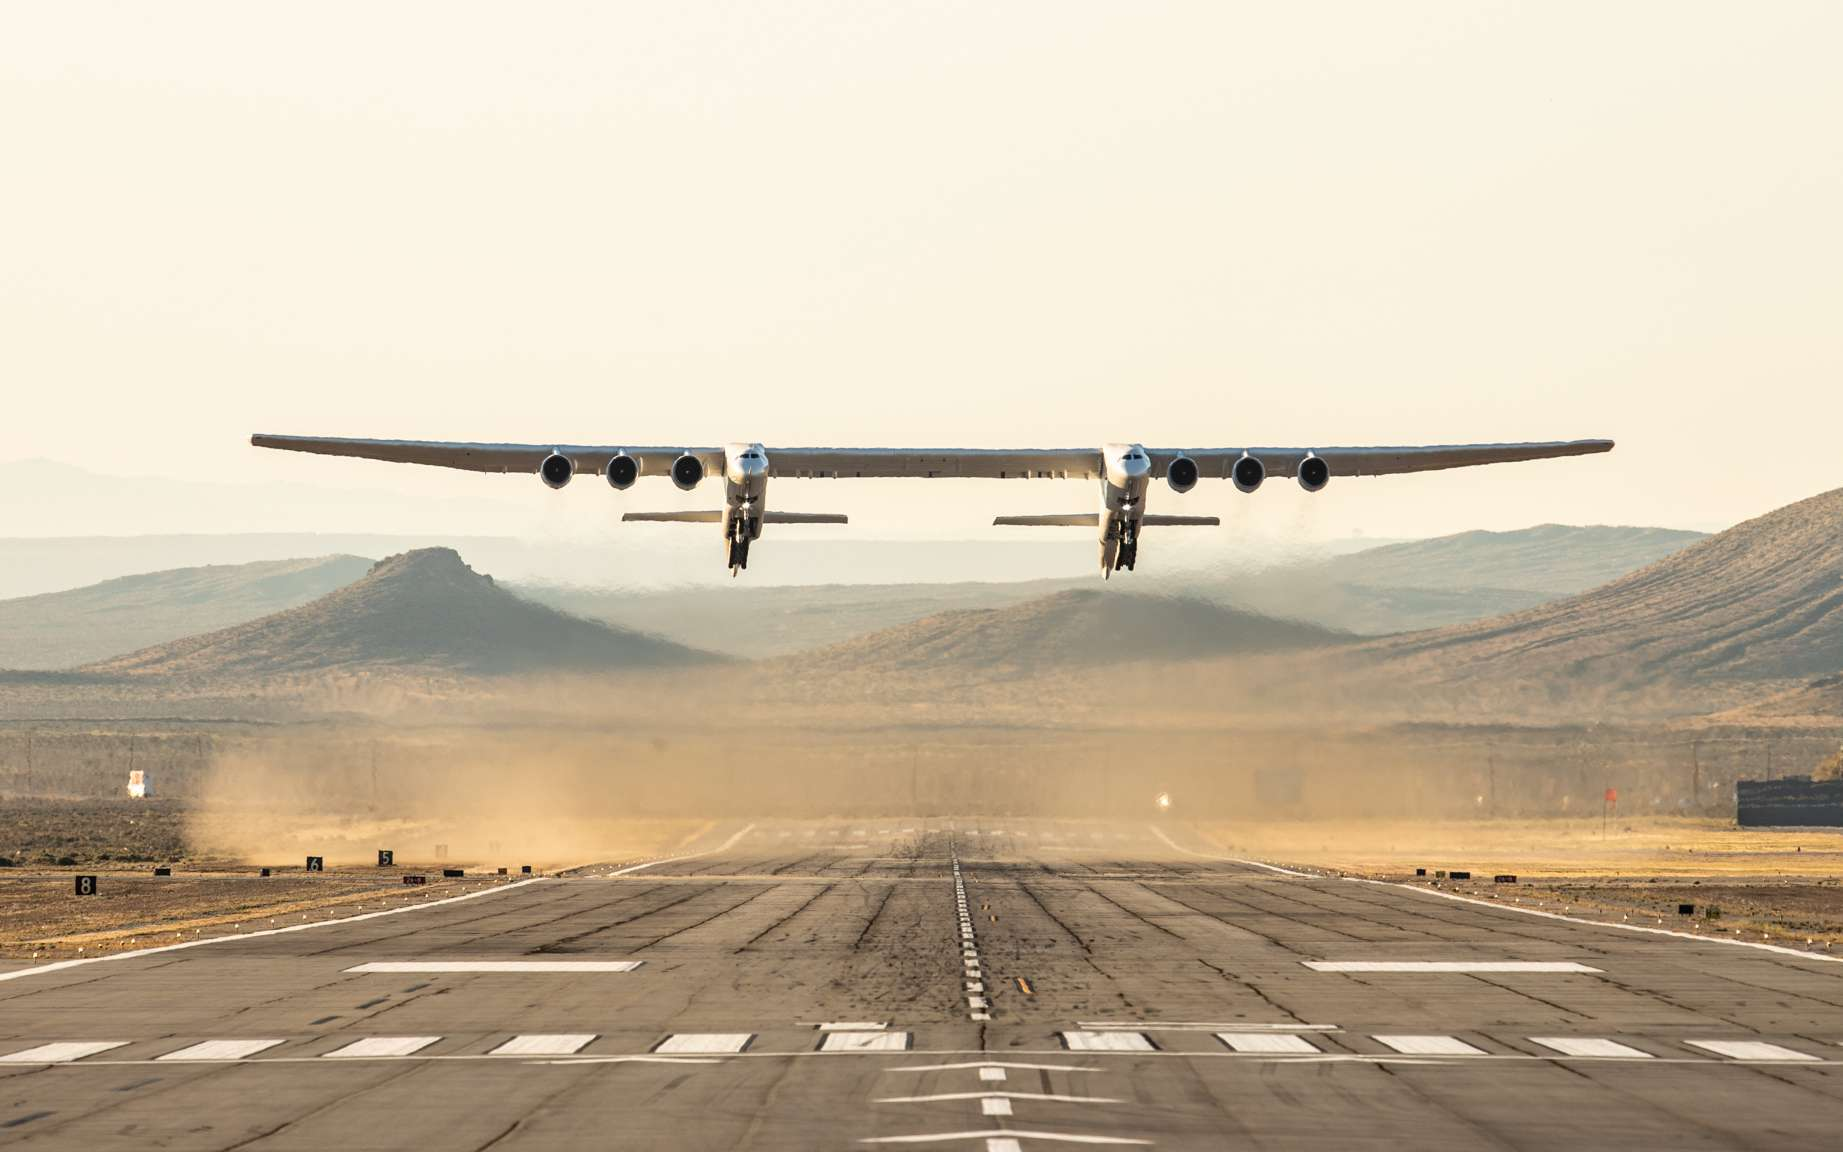 Premier vol d'essai du Stratolaunch, l'avion porteur le plus grand au monde. © Stratolaunch Systems